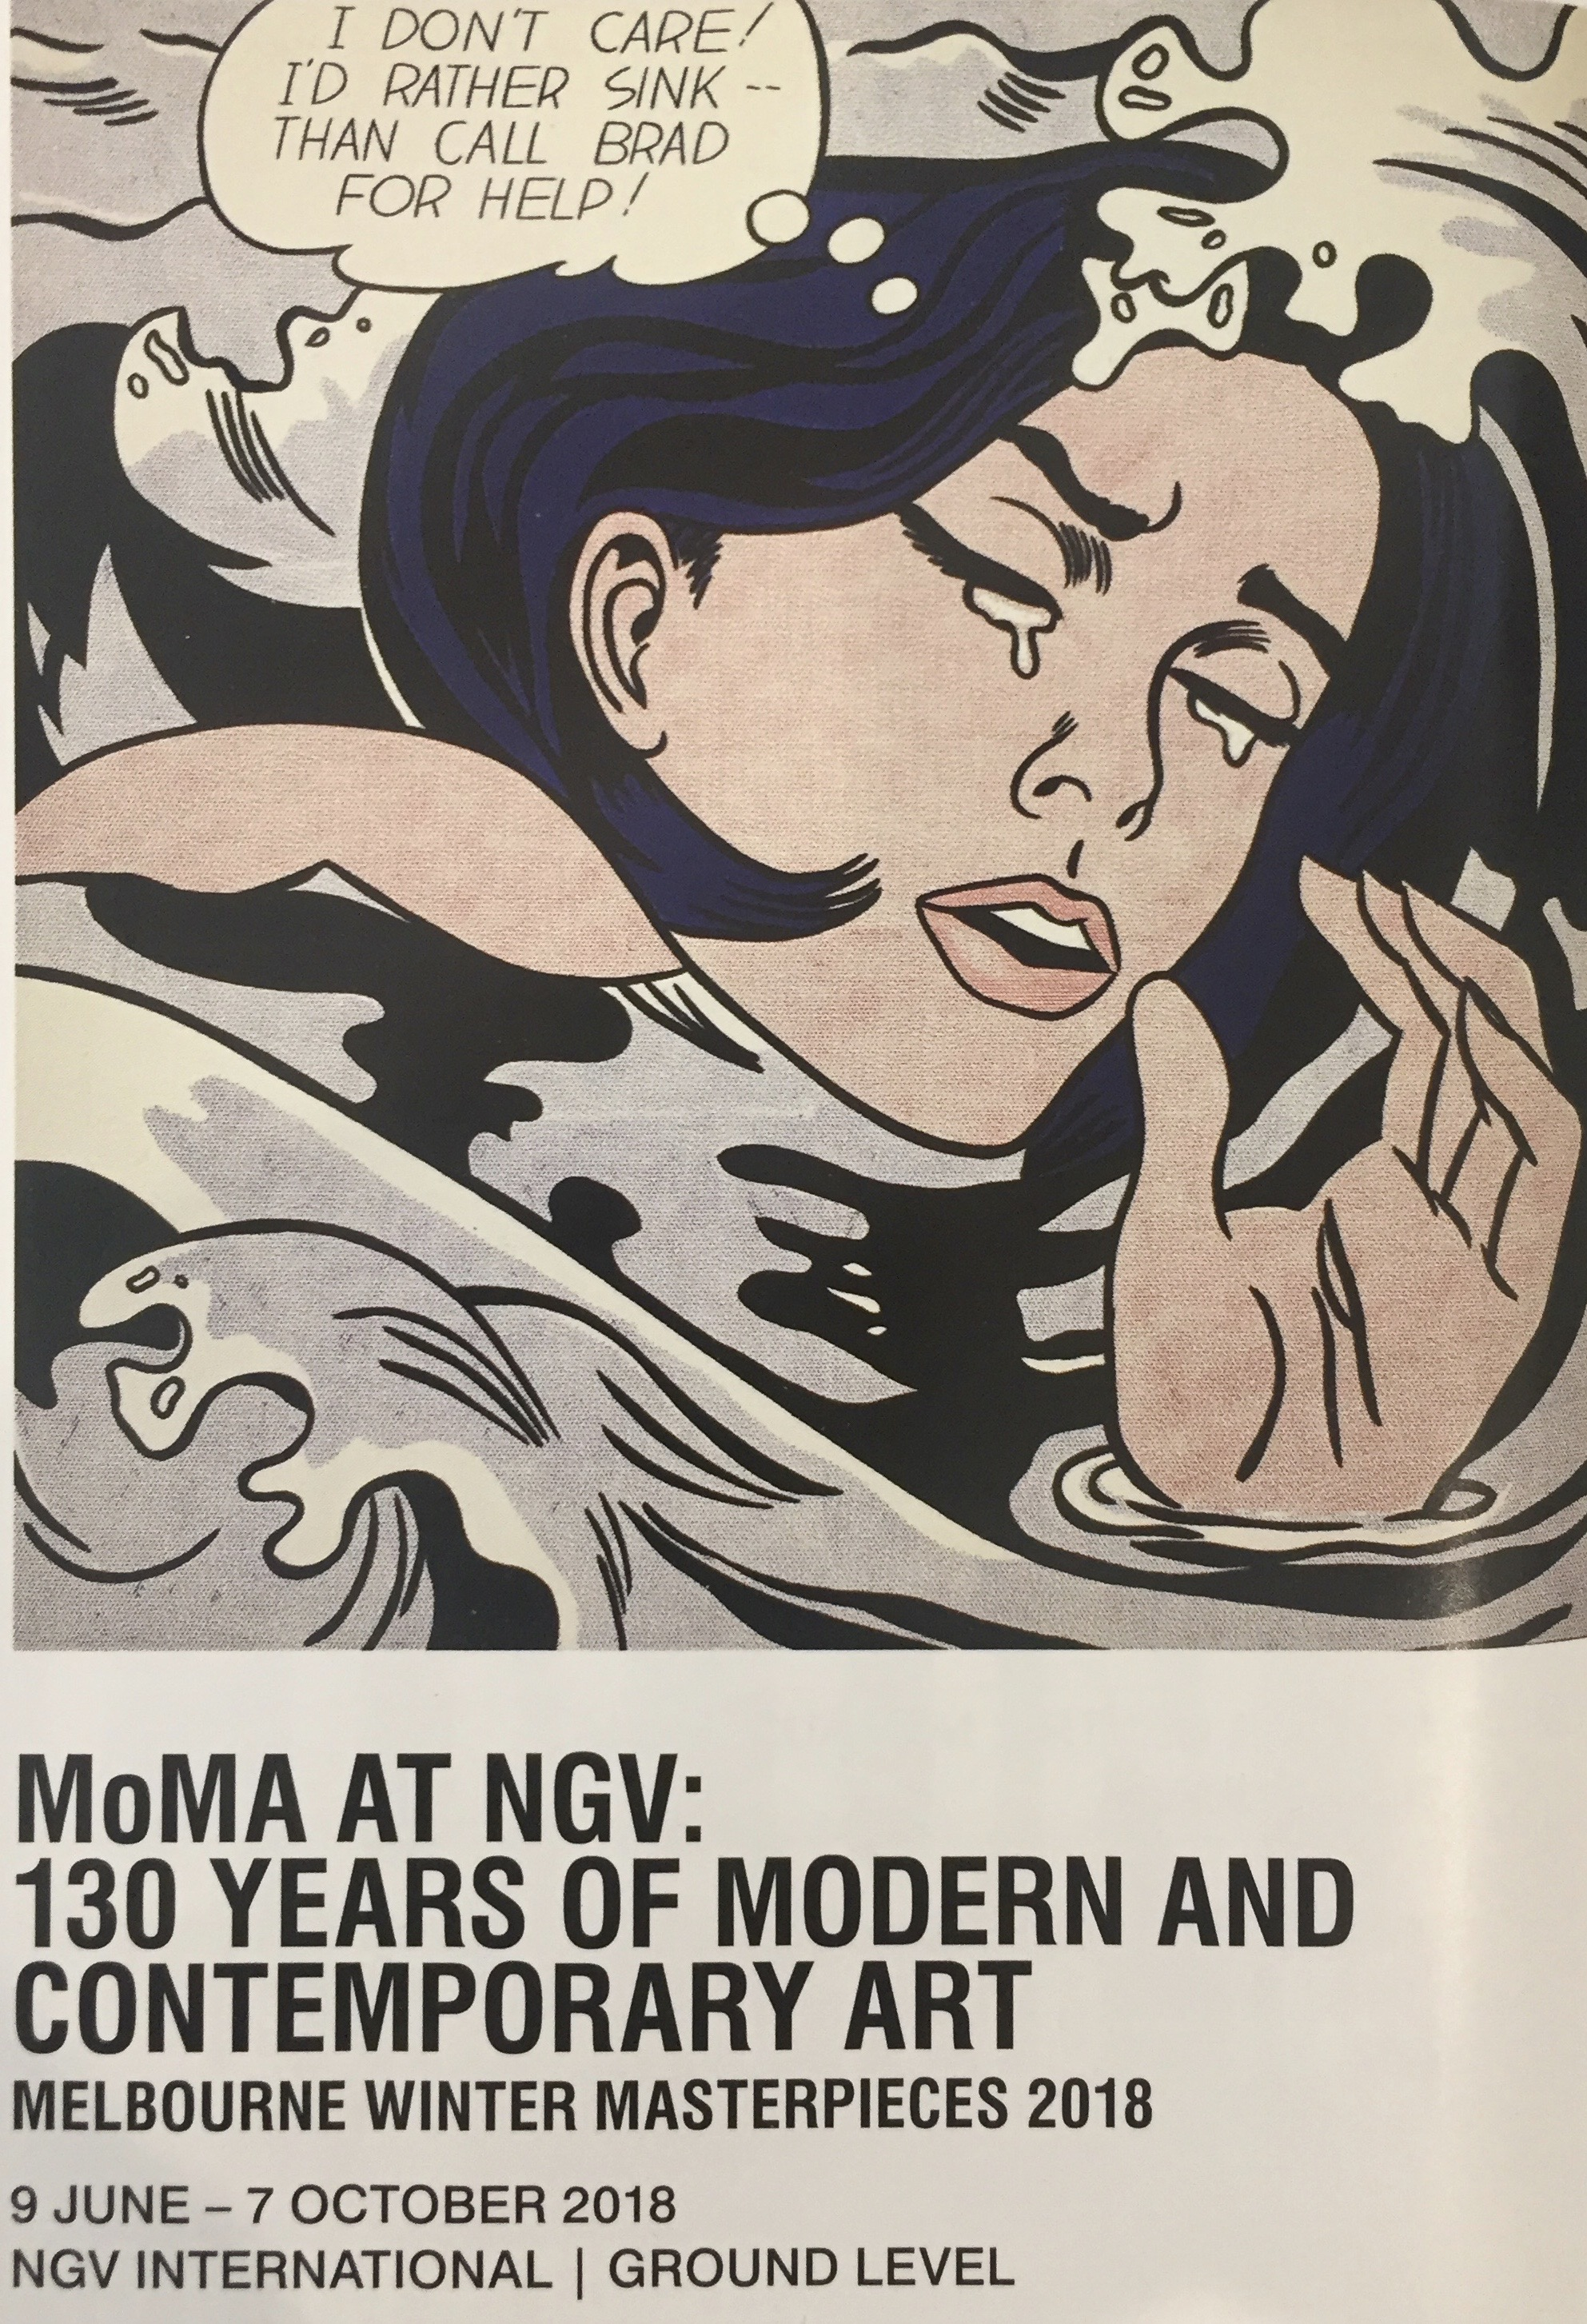 MoMA at NGV